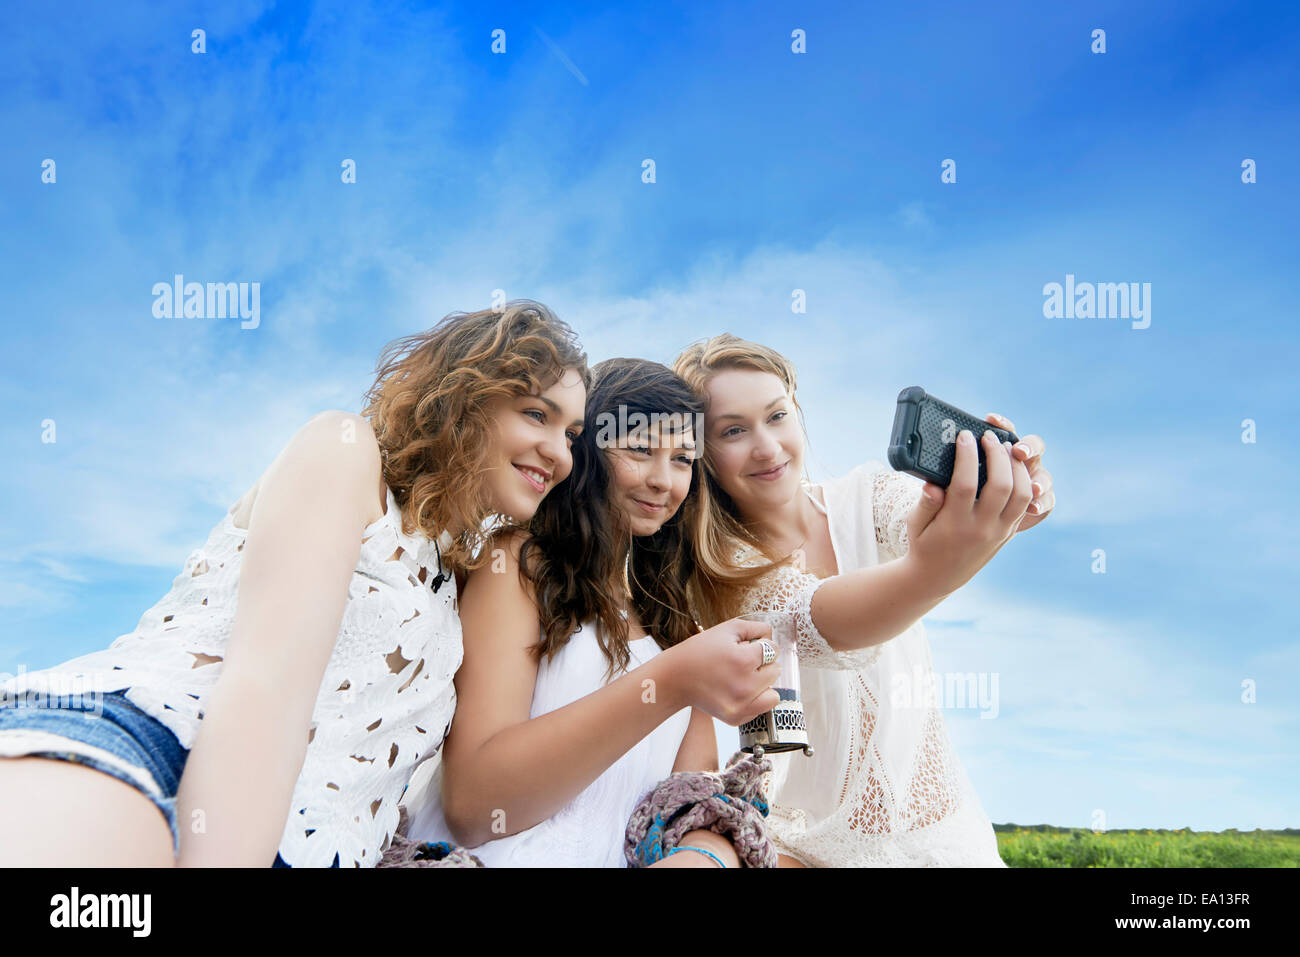 Three young women in field posing for selfie on smartphone - Stock Image